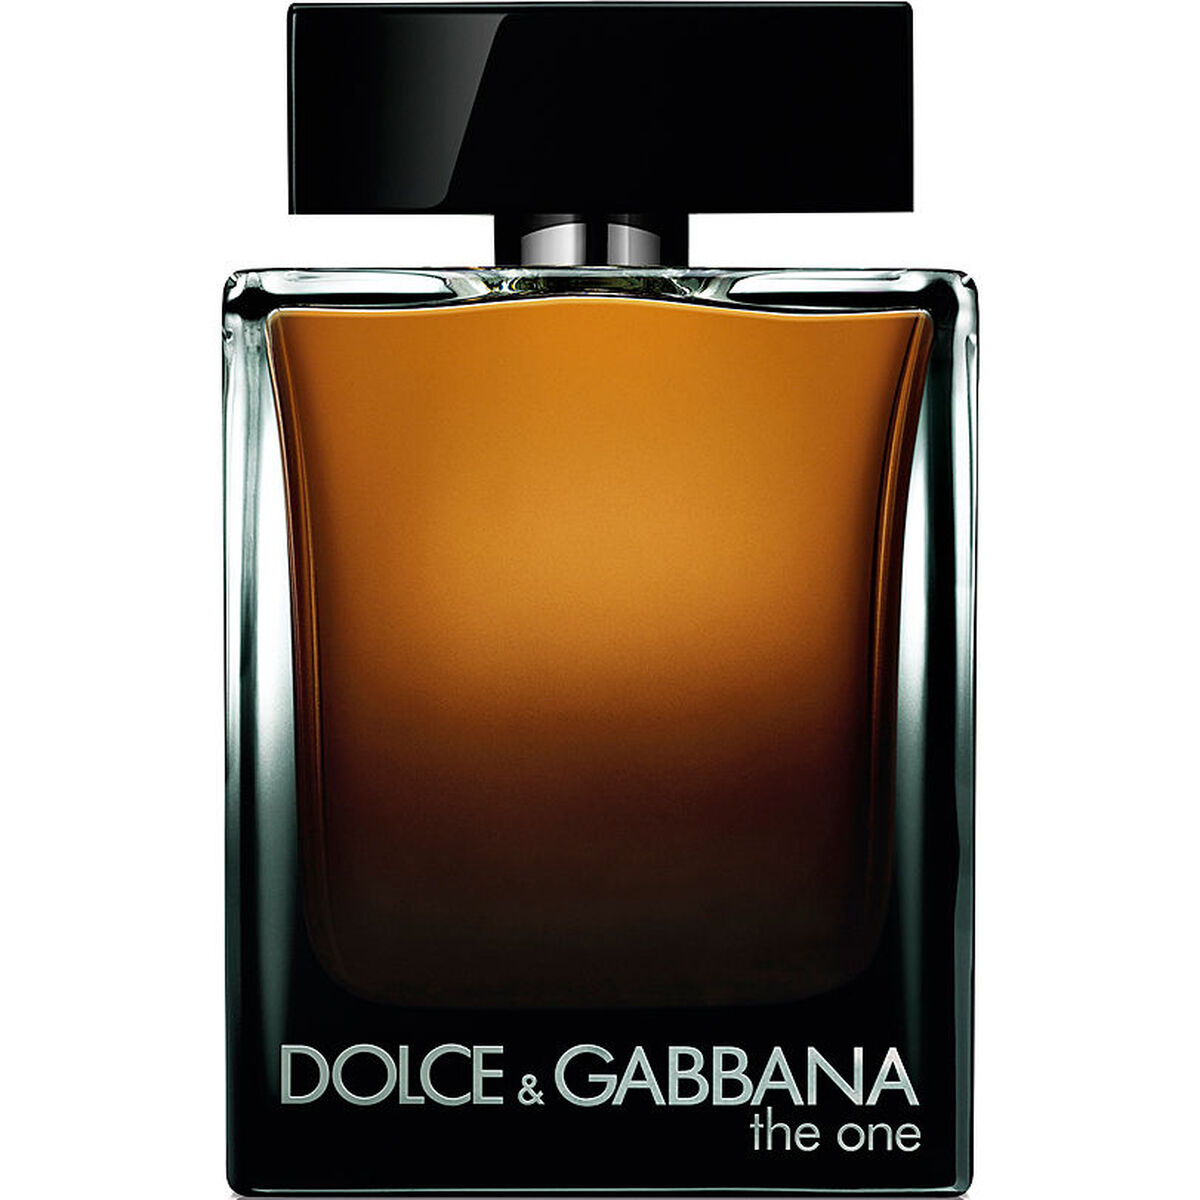 Dolce Gabbana The One Men, Eau de Parfum   Karstadt Online-Shop c7c1e7d1c4d6